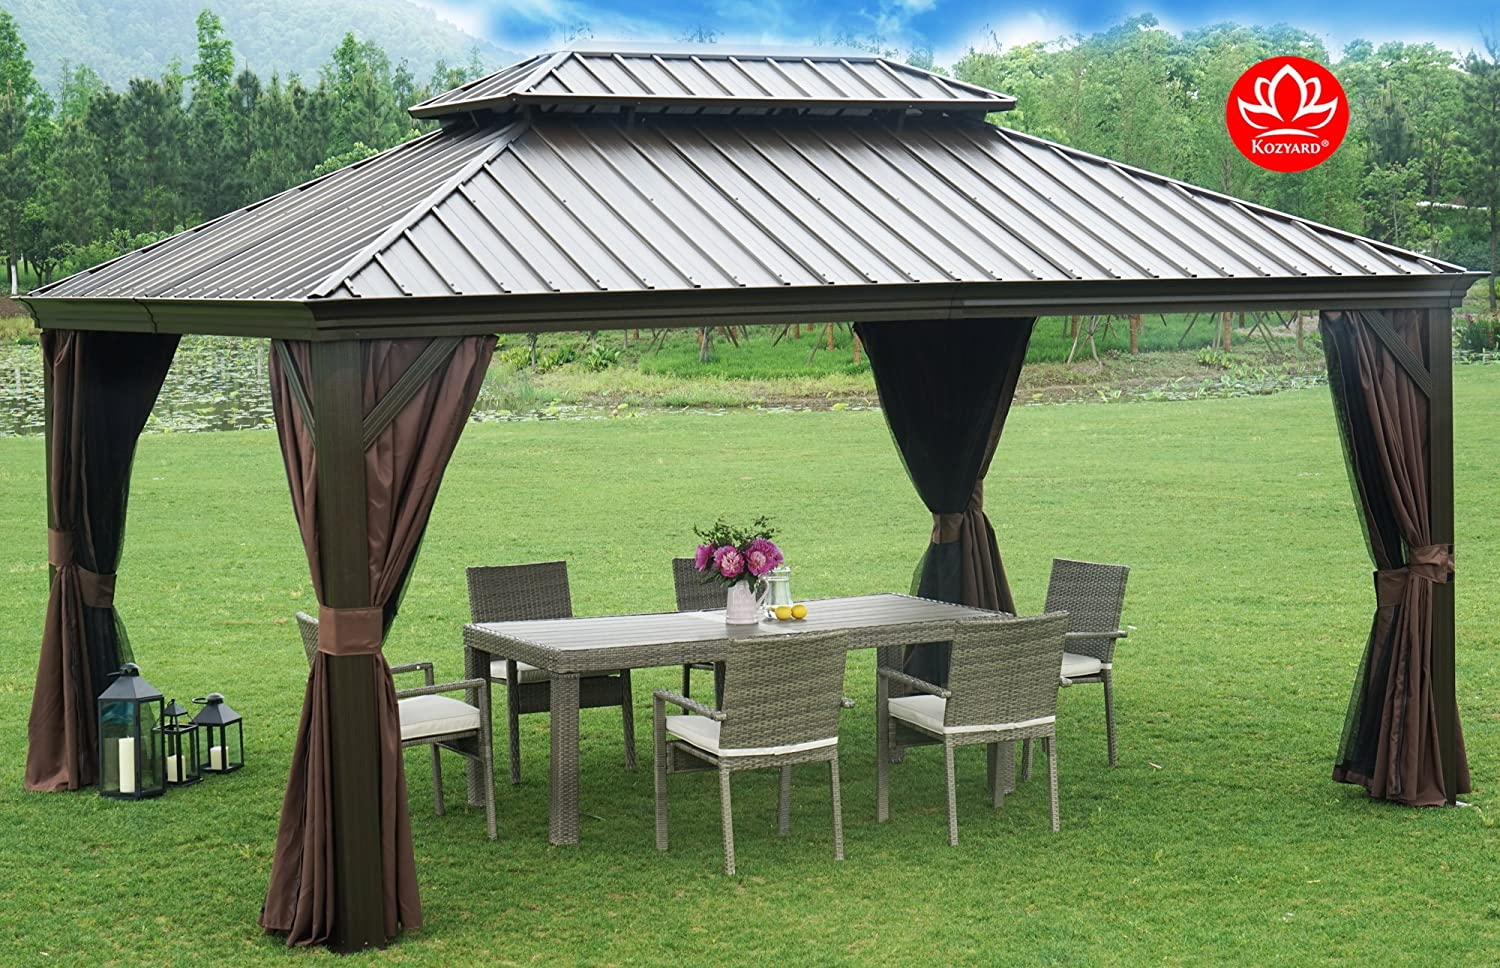 What Are Gazebos Made Of